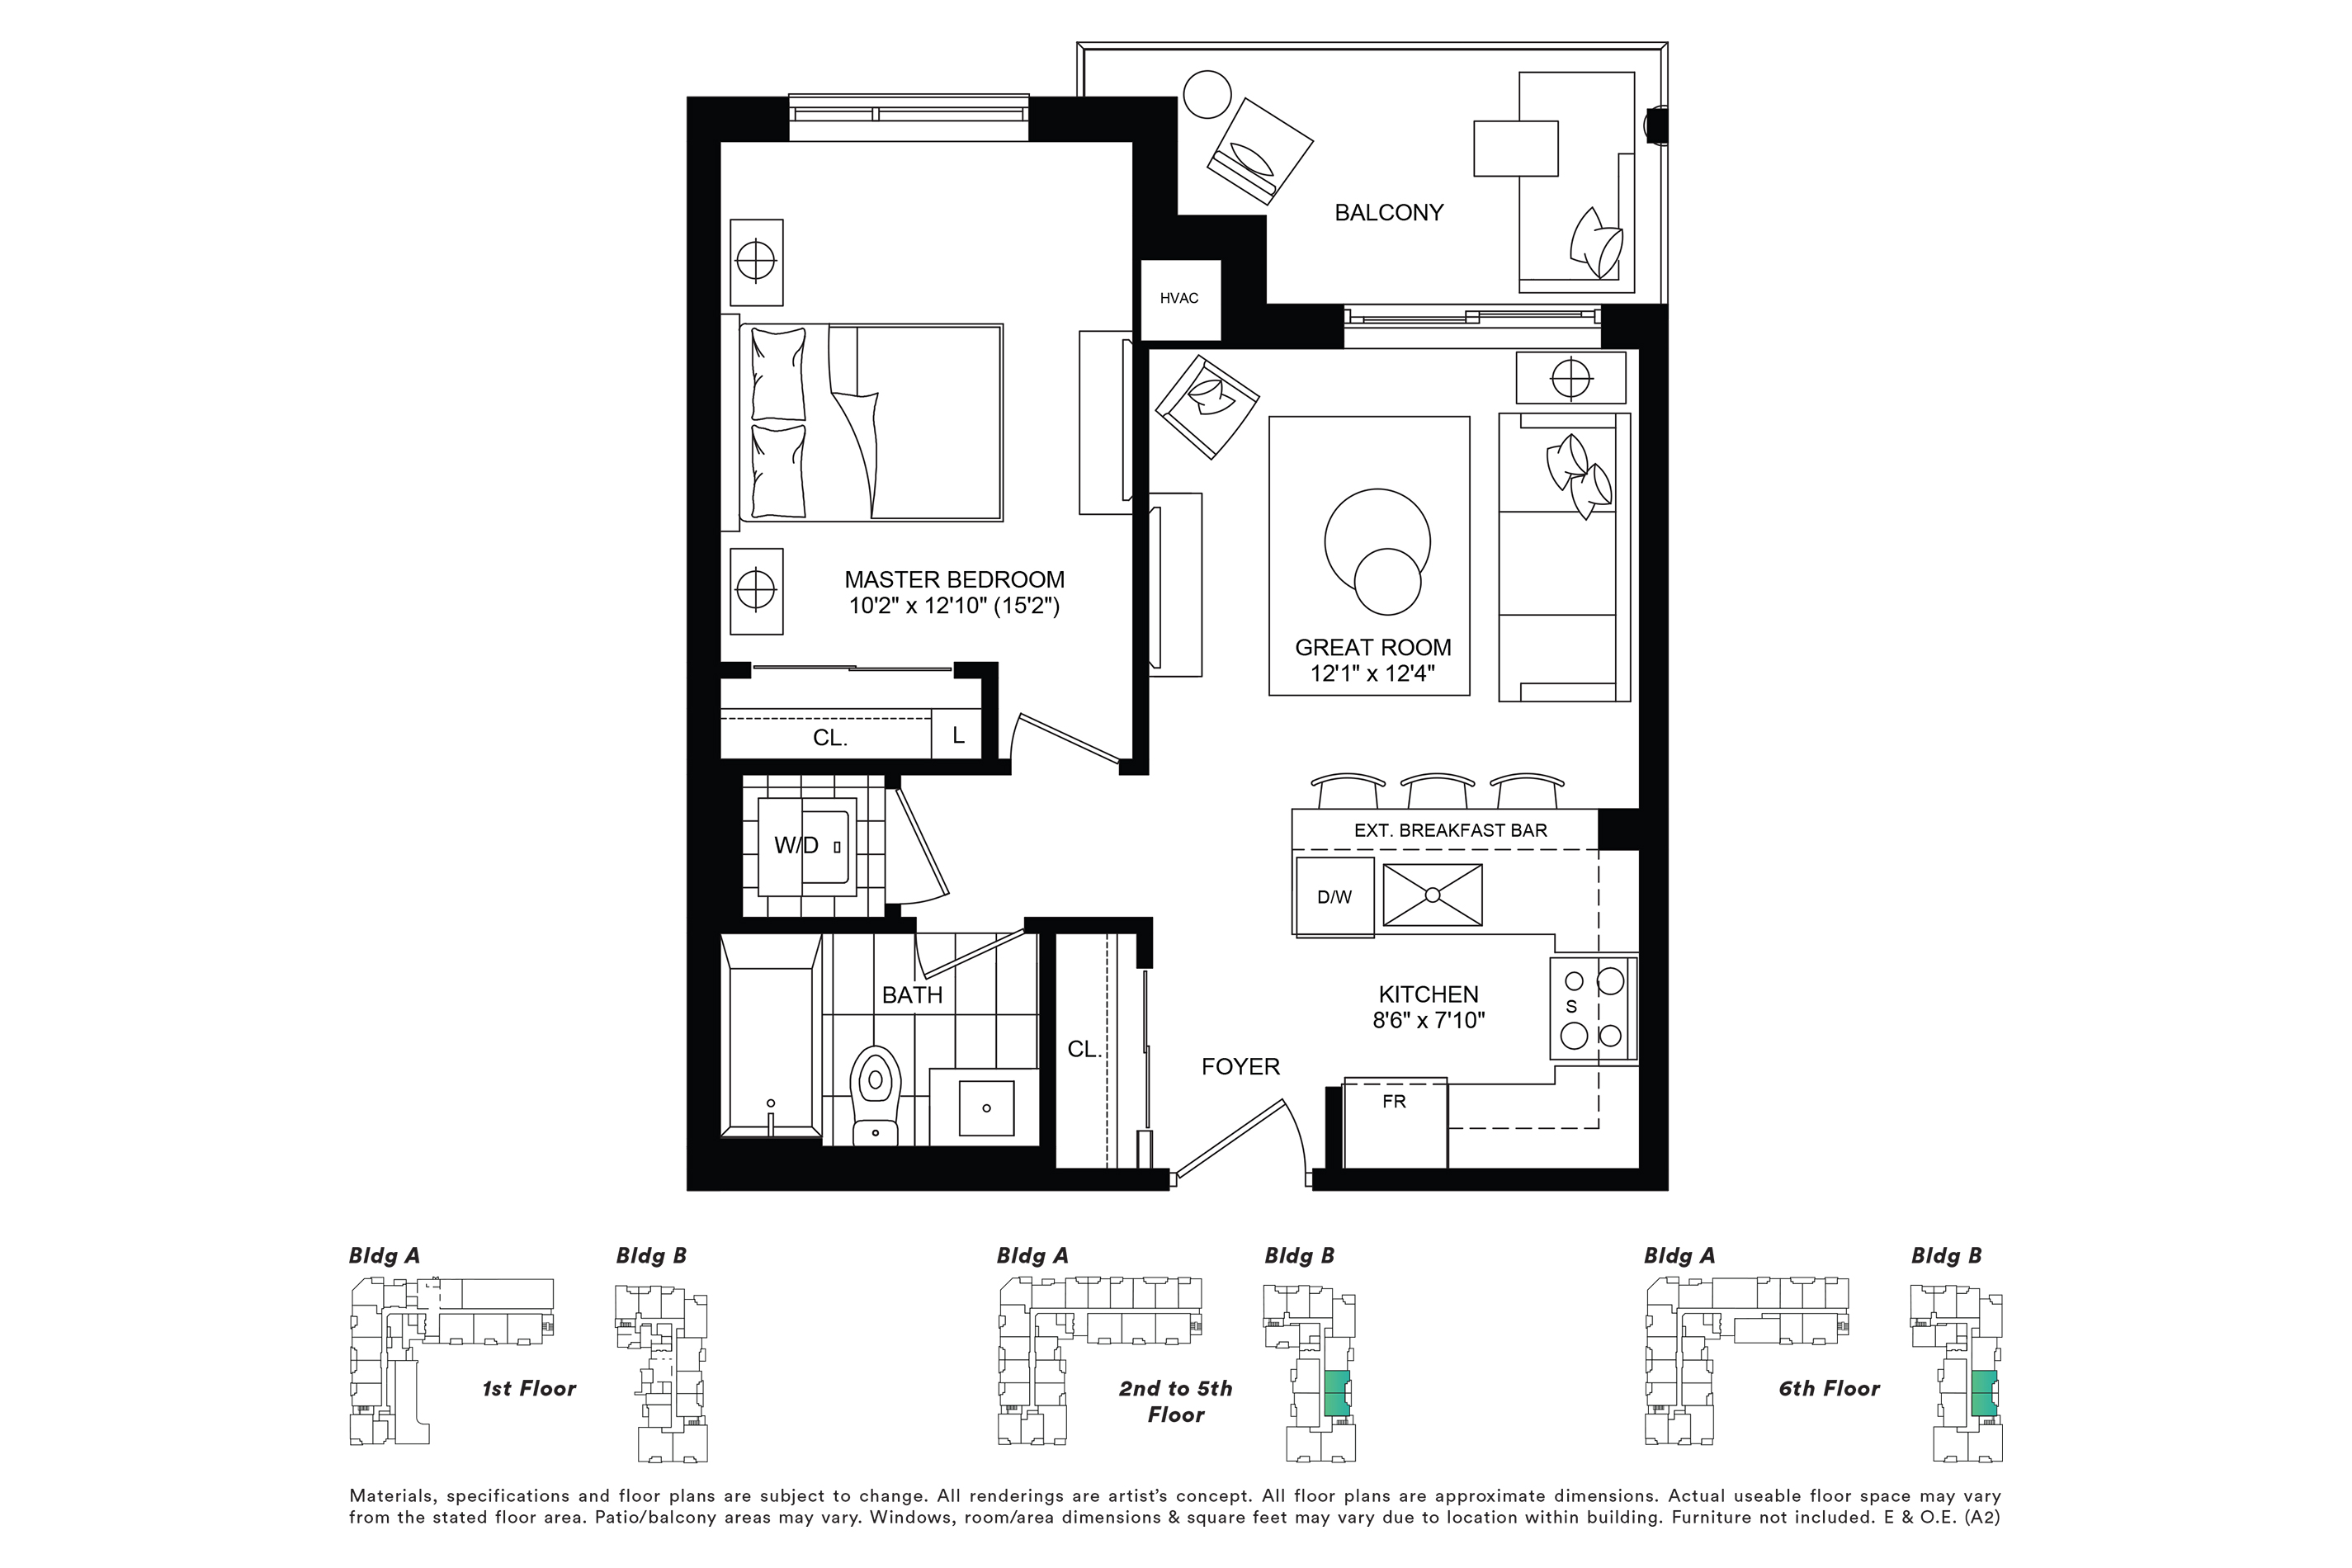 Ascent Elevation Condo Units